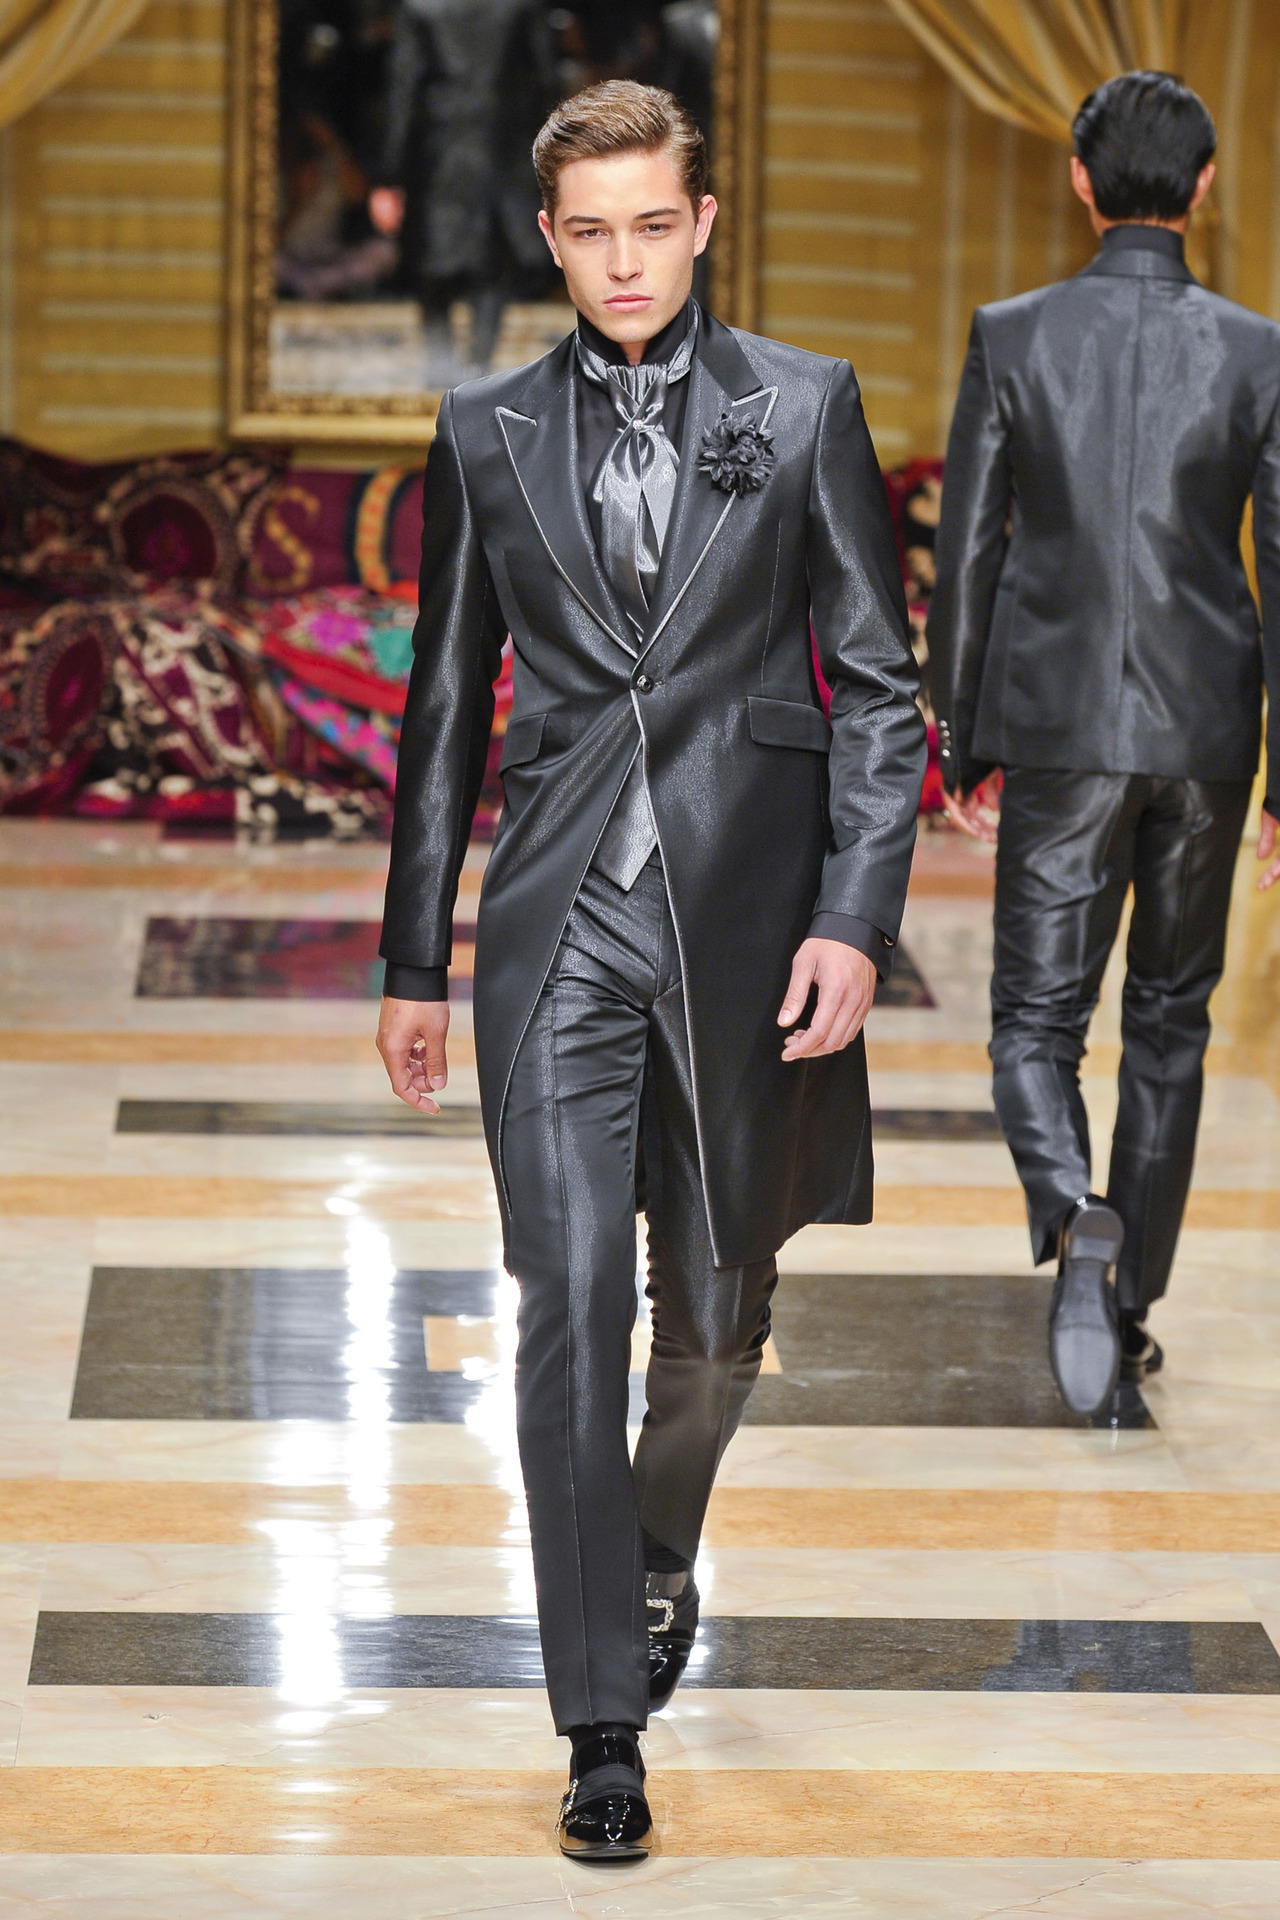 Francisco Lachowski for Carlo Pignatelli SS 2013